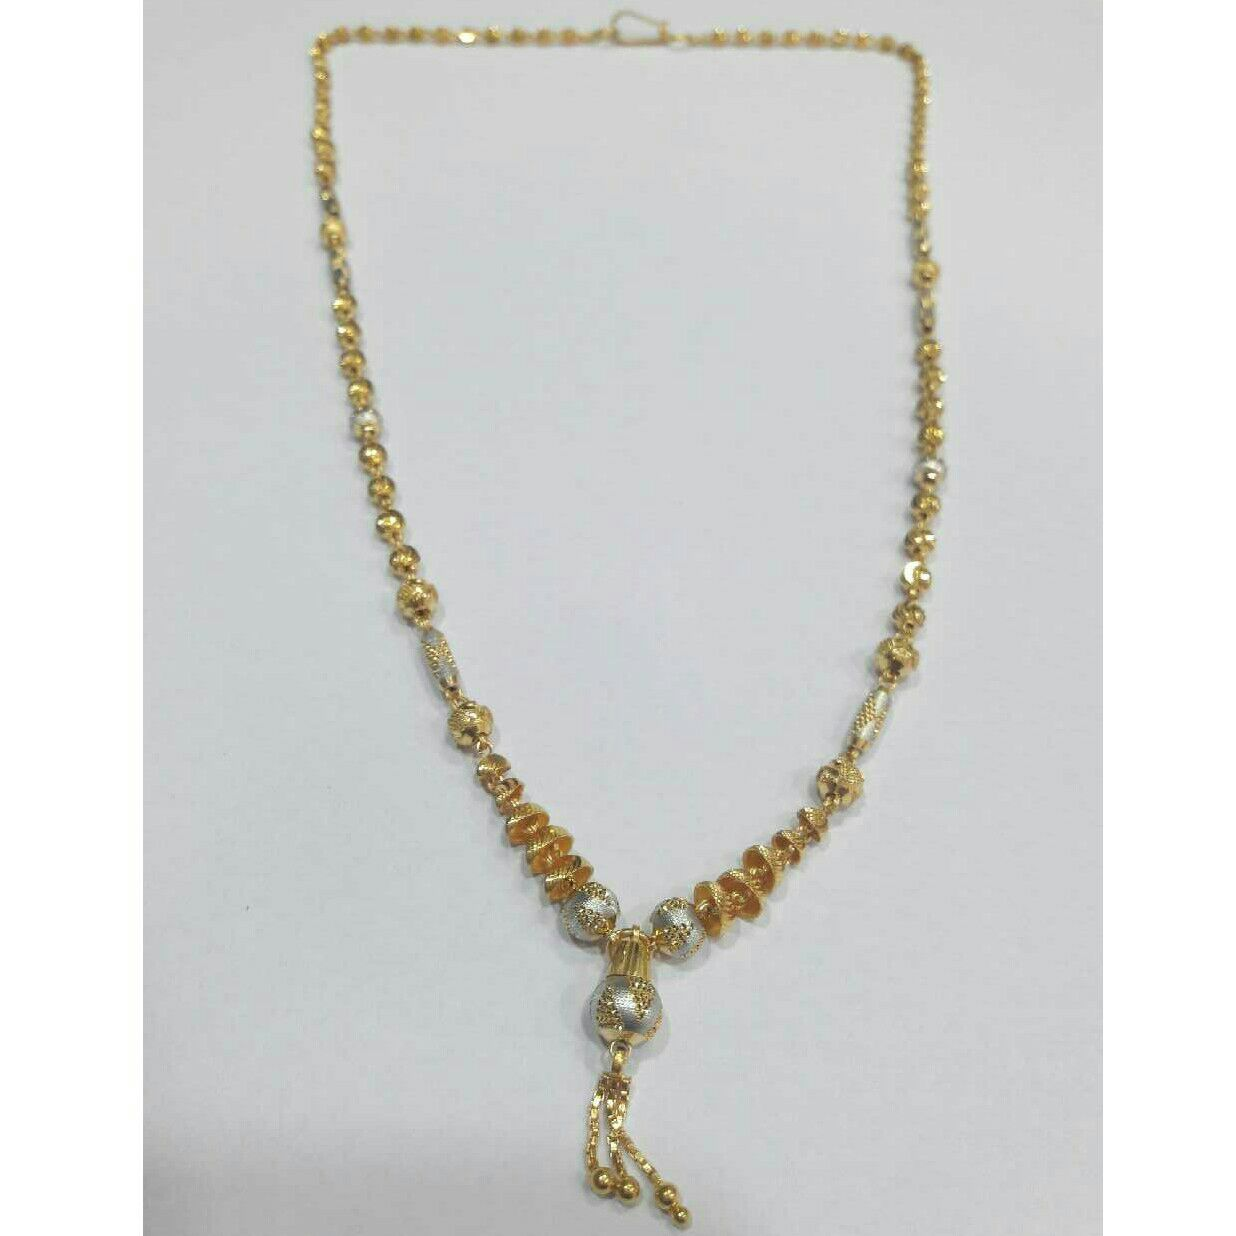 22K / 916 Gold Ladies Indian Special Mala